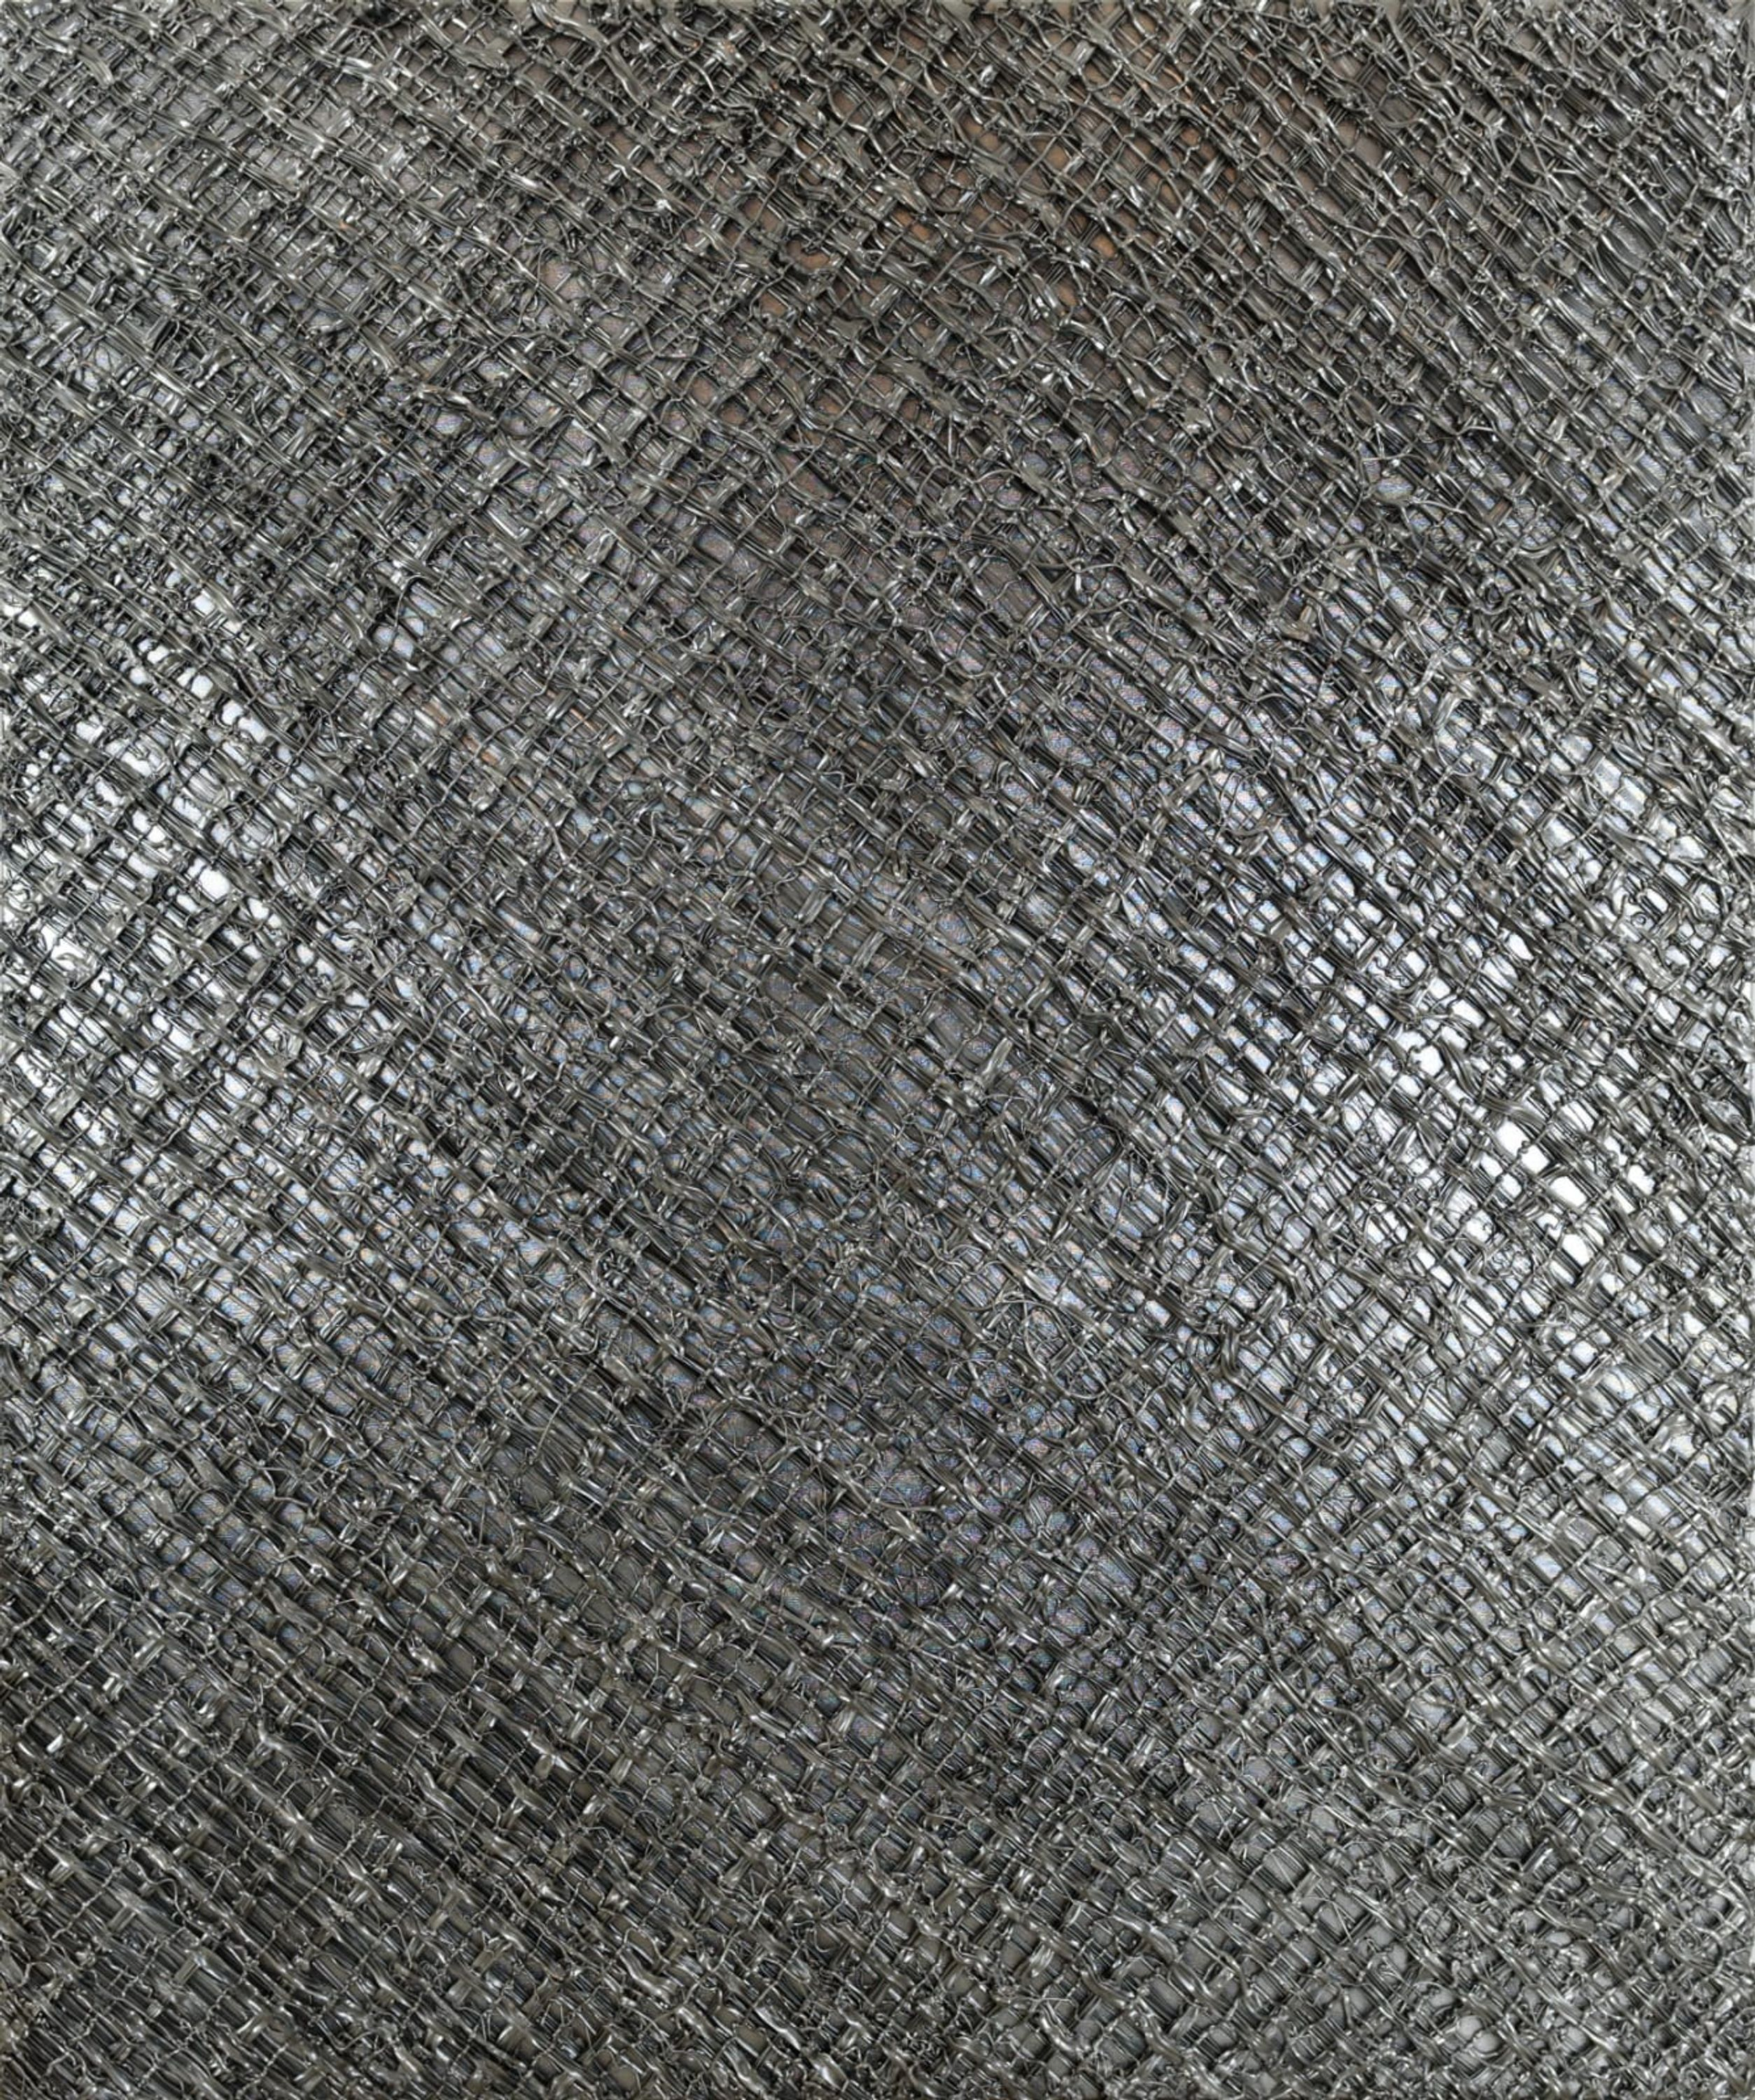 Knitted Nickel Series by Melvin Martínez, National